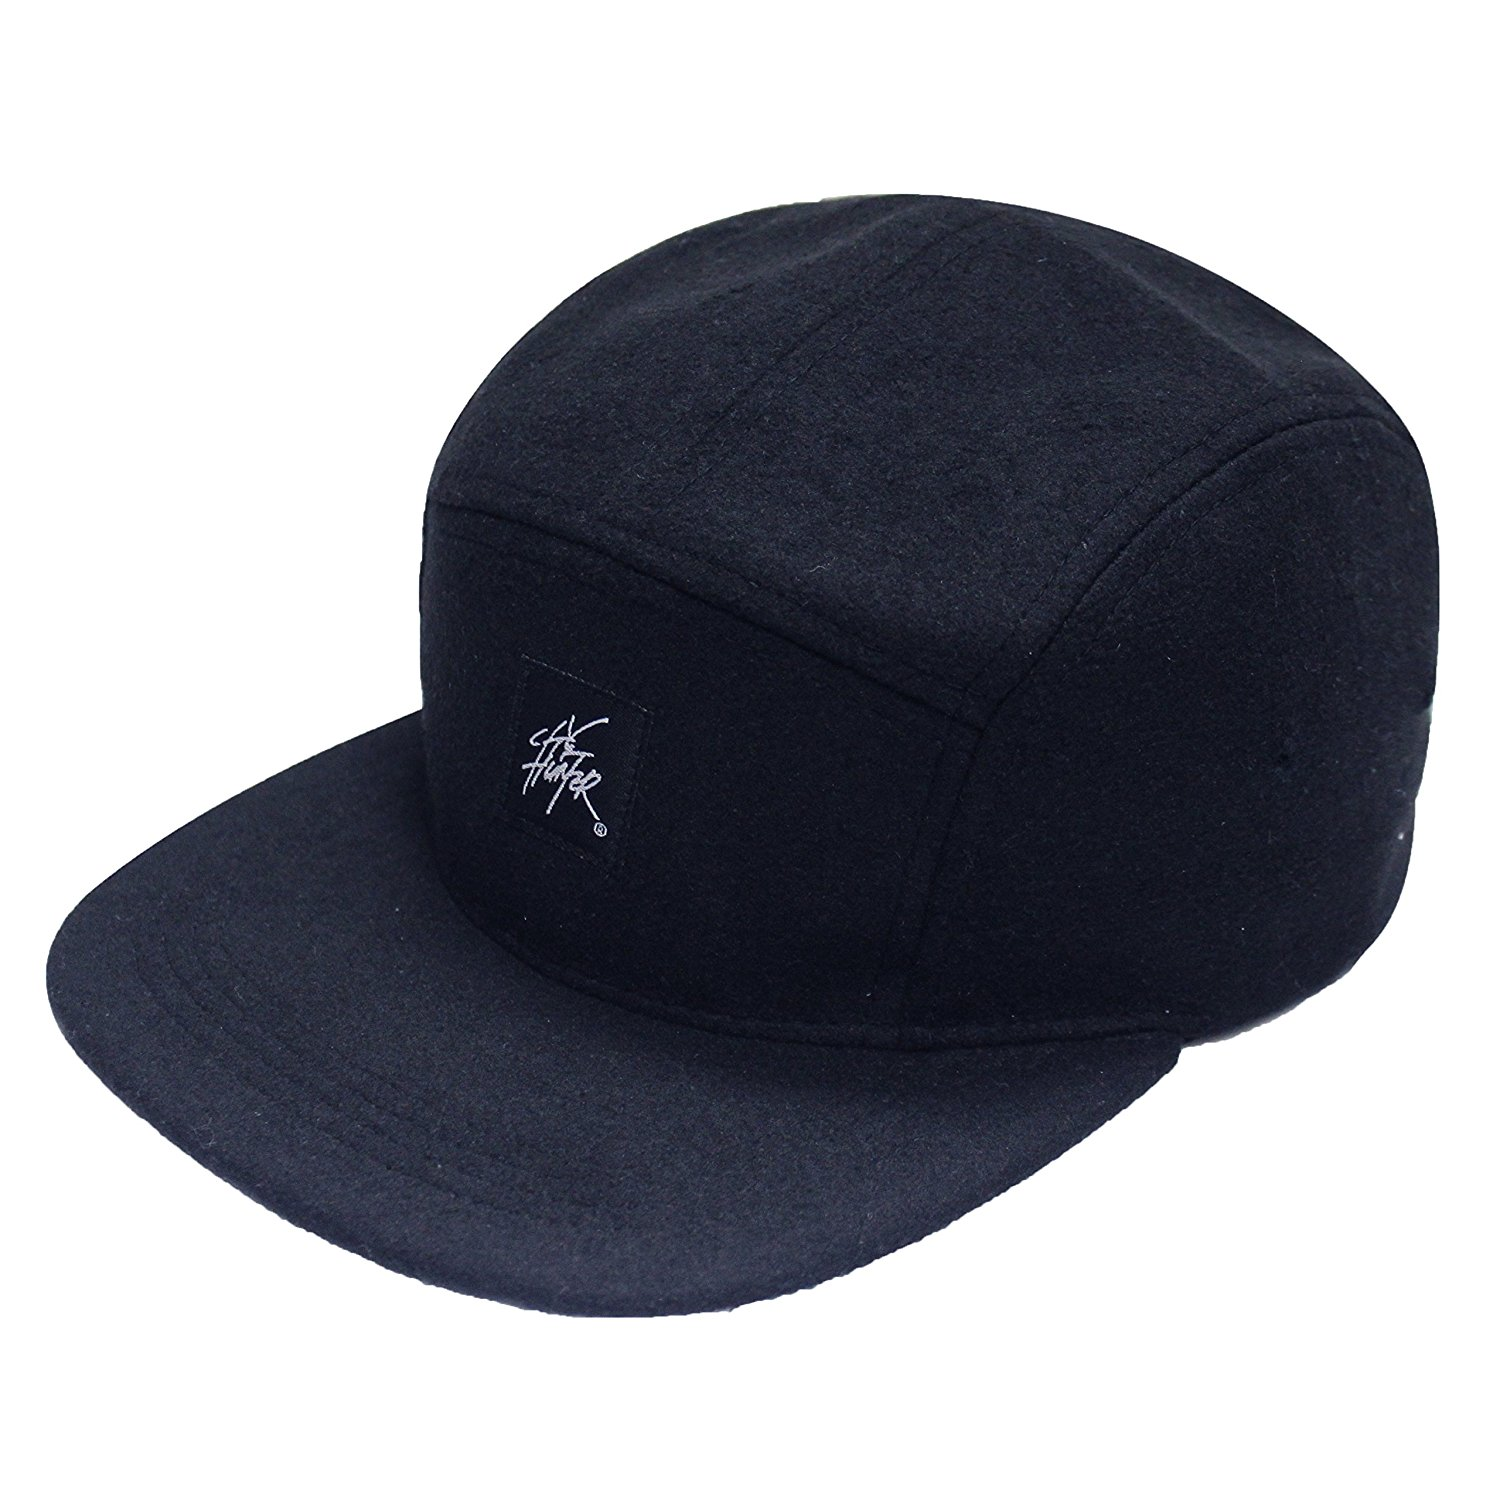 d631eeadffd Get Quotations · City Hunter Cn460 5 Panel Wool Leather 5 Panel Hat (40  Colors)